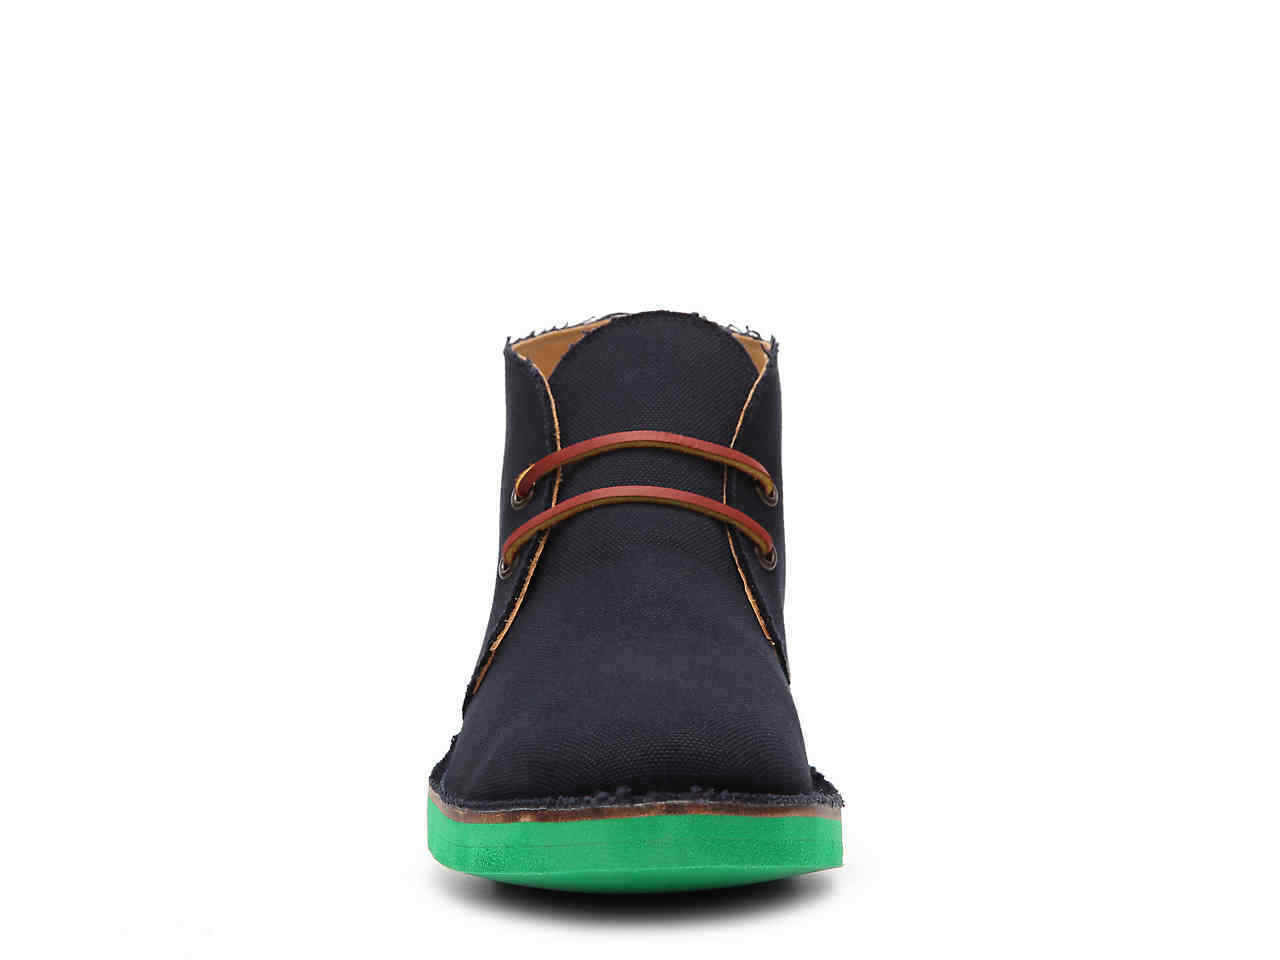 395 NIB Authentic Authentic Authentic RALPH LAUREN COLLECTION RANDON CANVAS CHUKKA BOOT, SPAIN 81fa4a